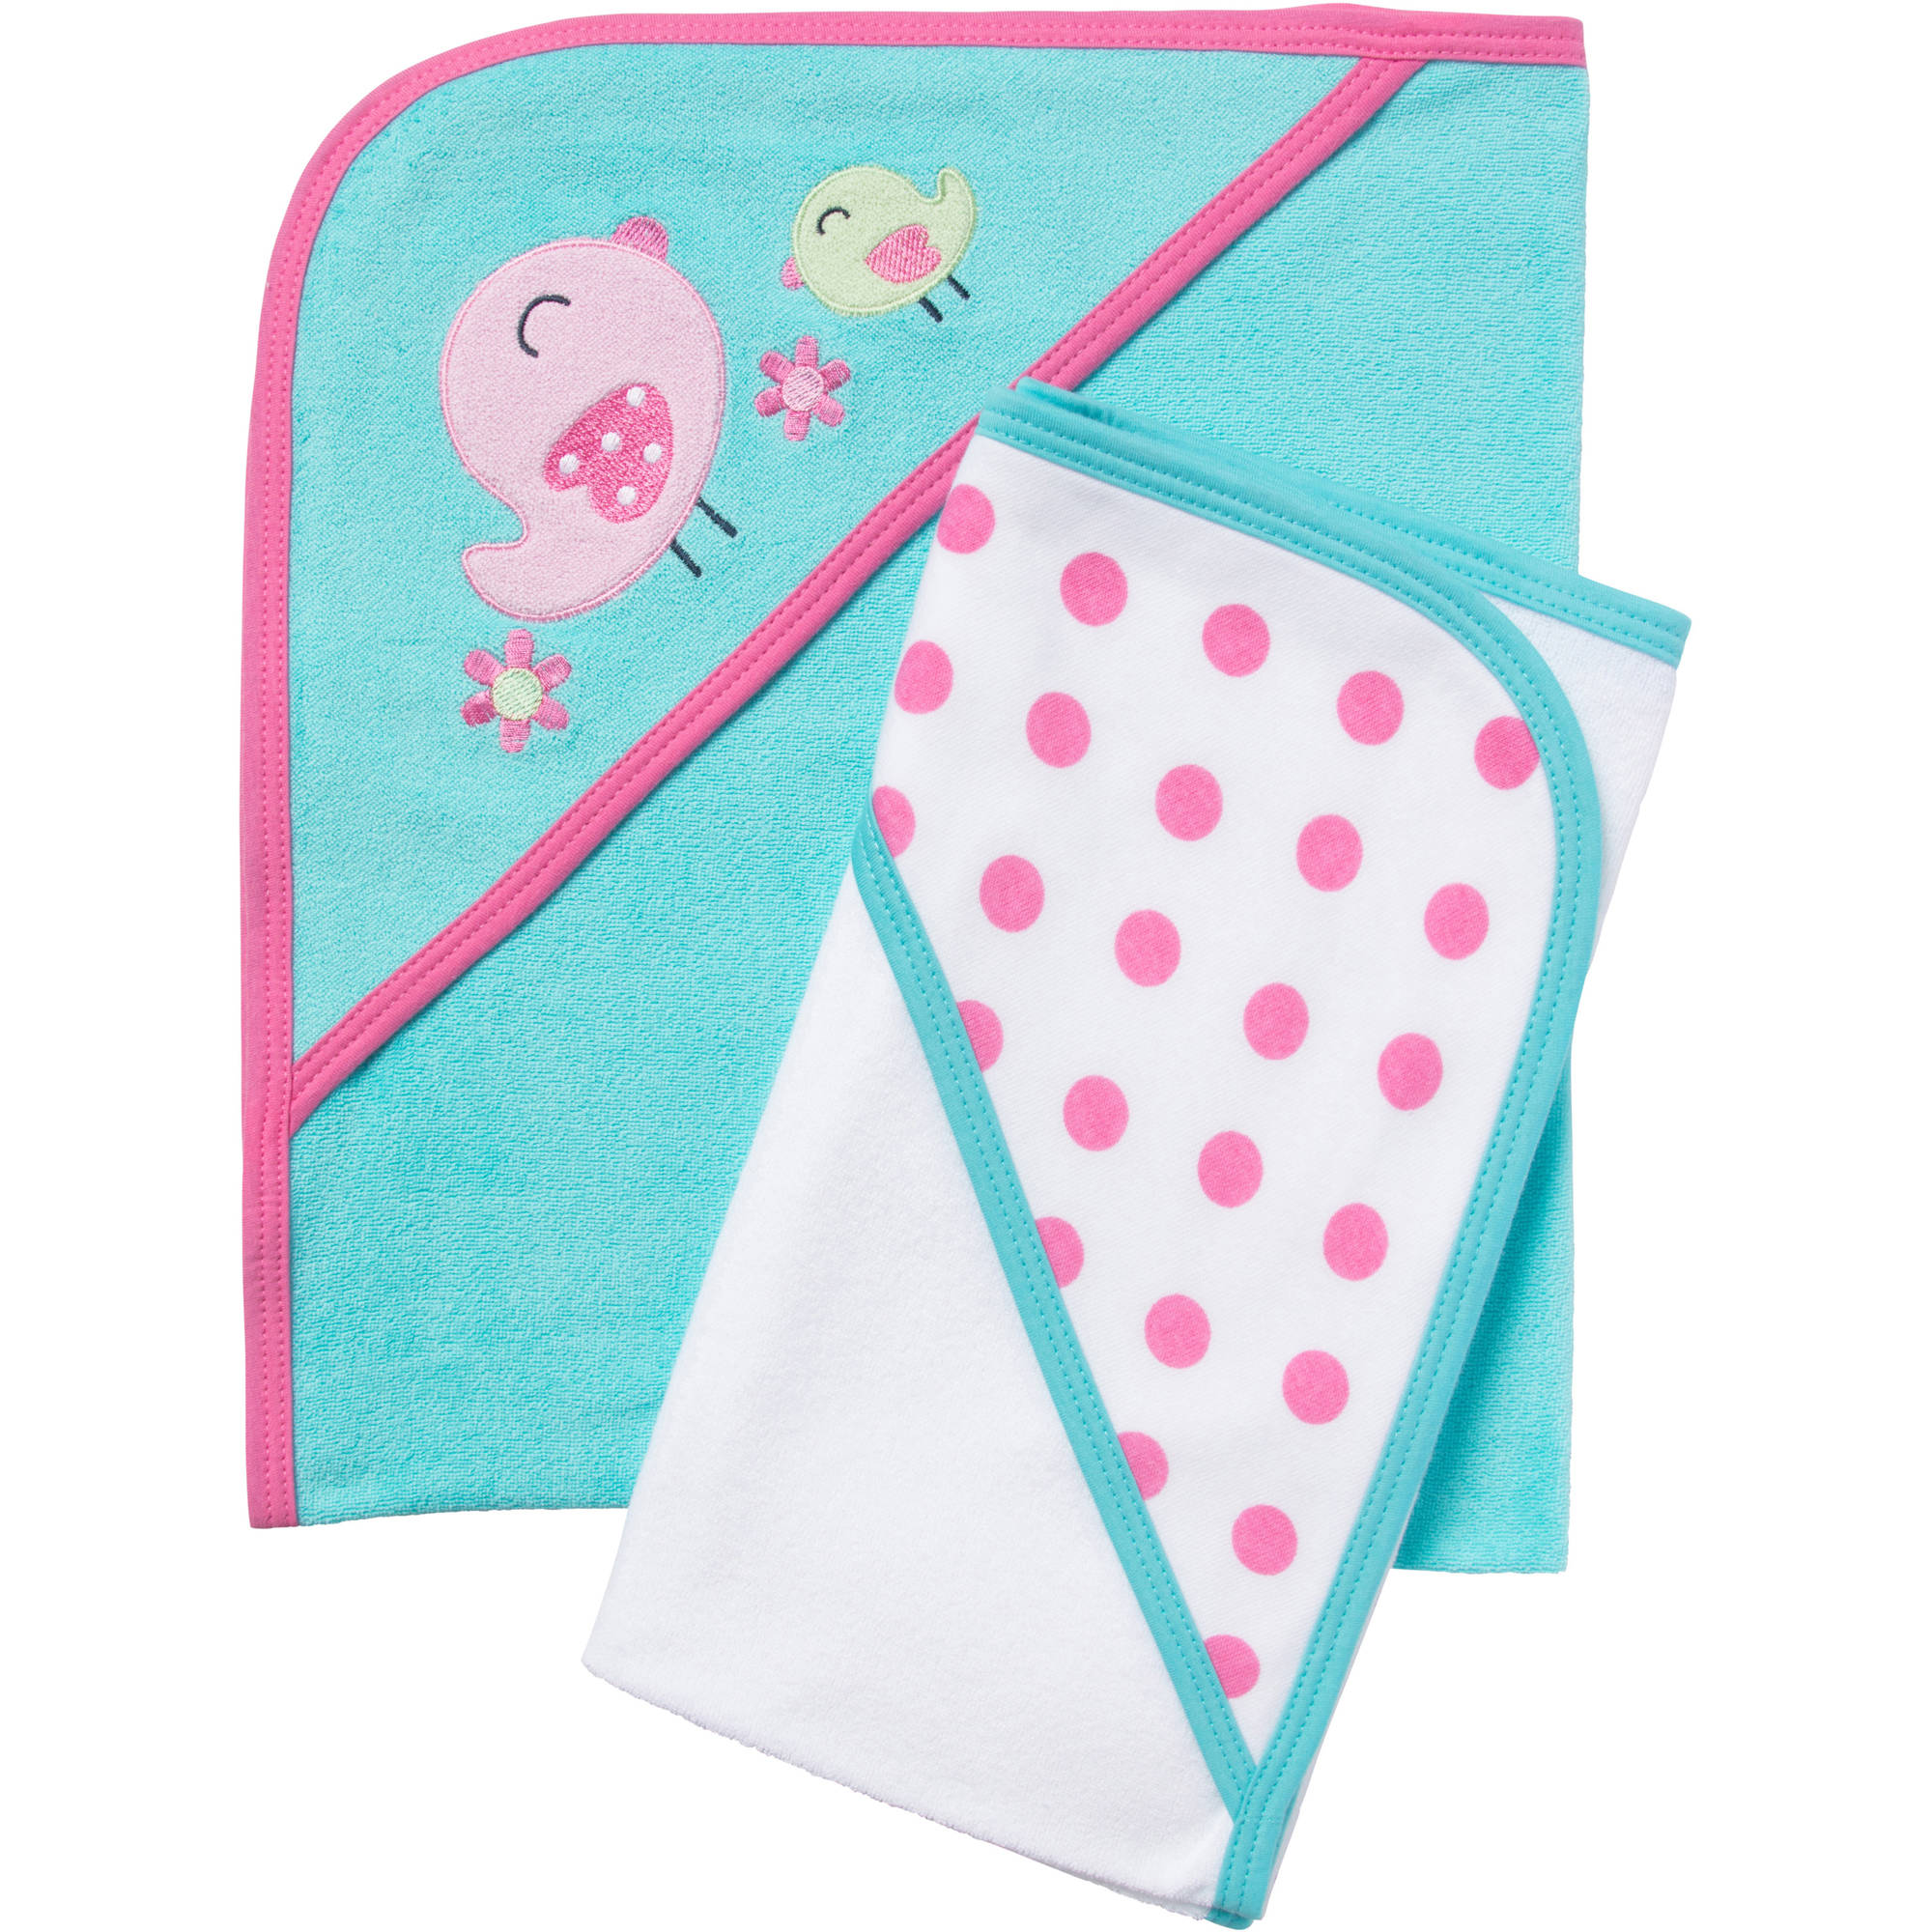 Gerber Newborn Baby Girl Terry Hooded Bath Towels, 2-Pack